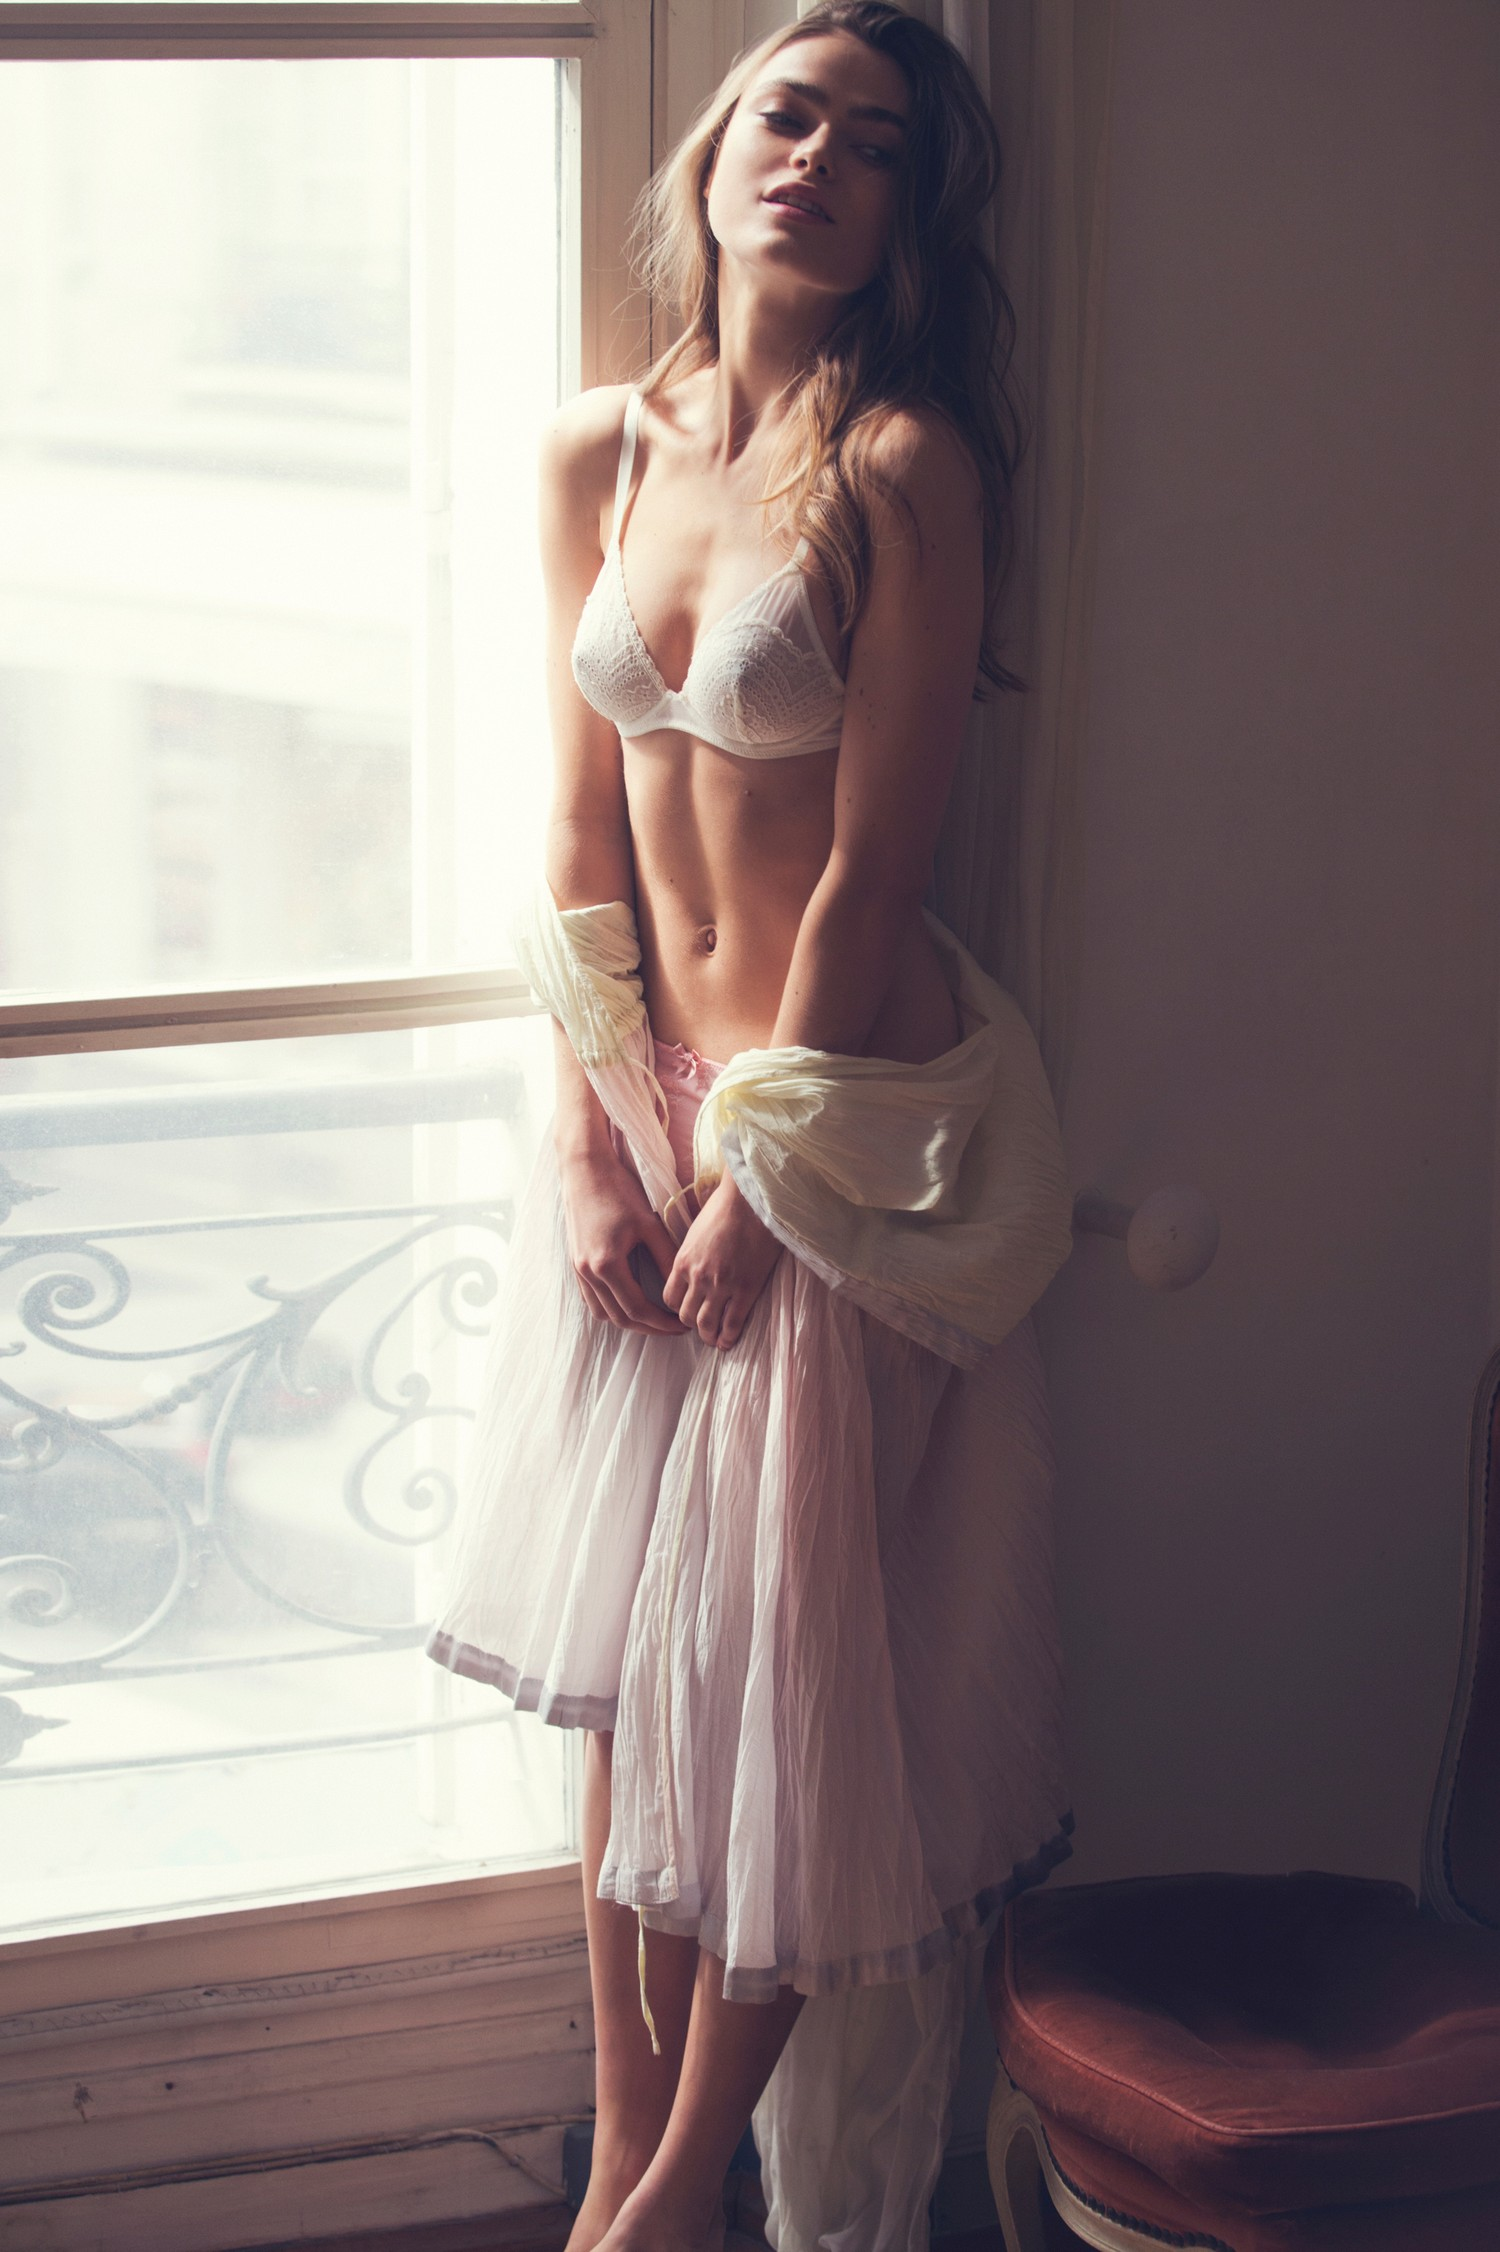 Sophie-Vlaming-FreePeople-Intimates-3